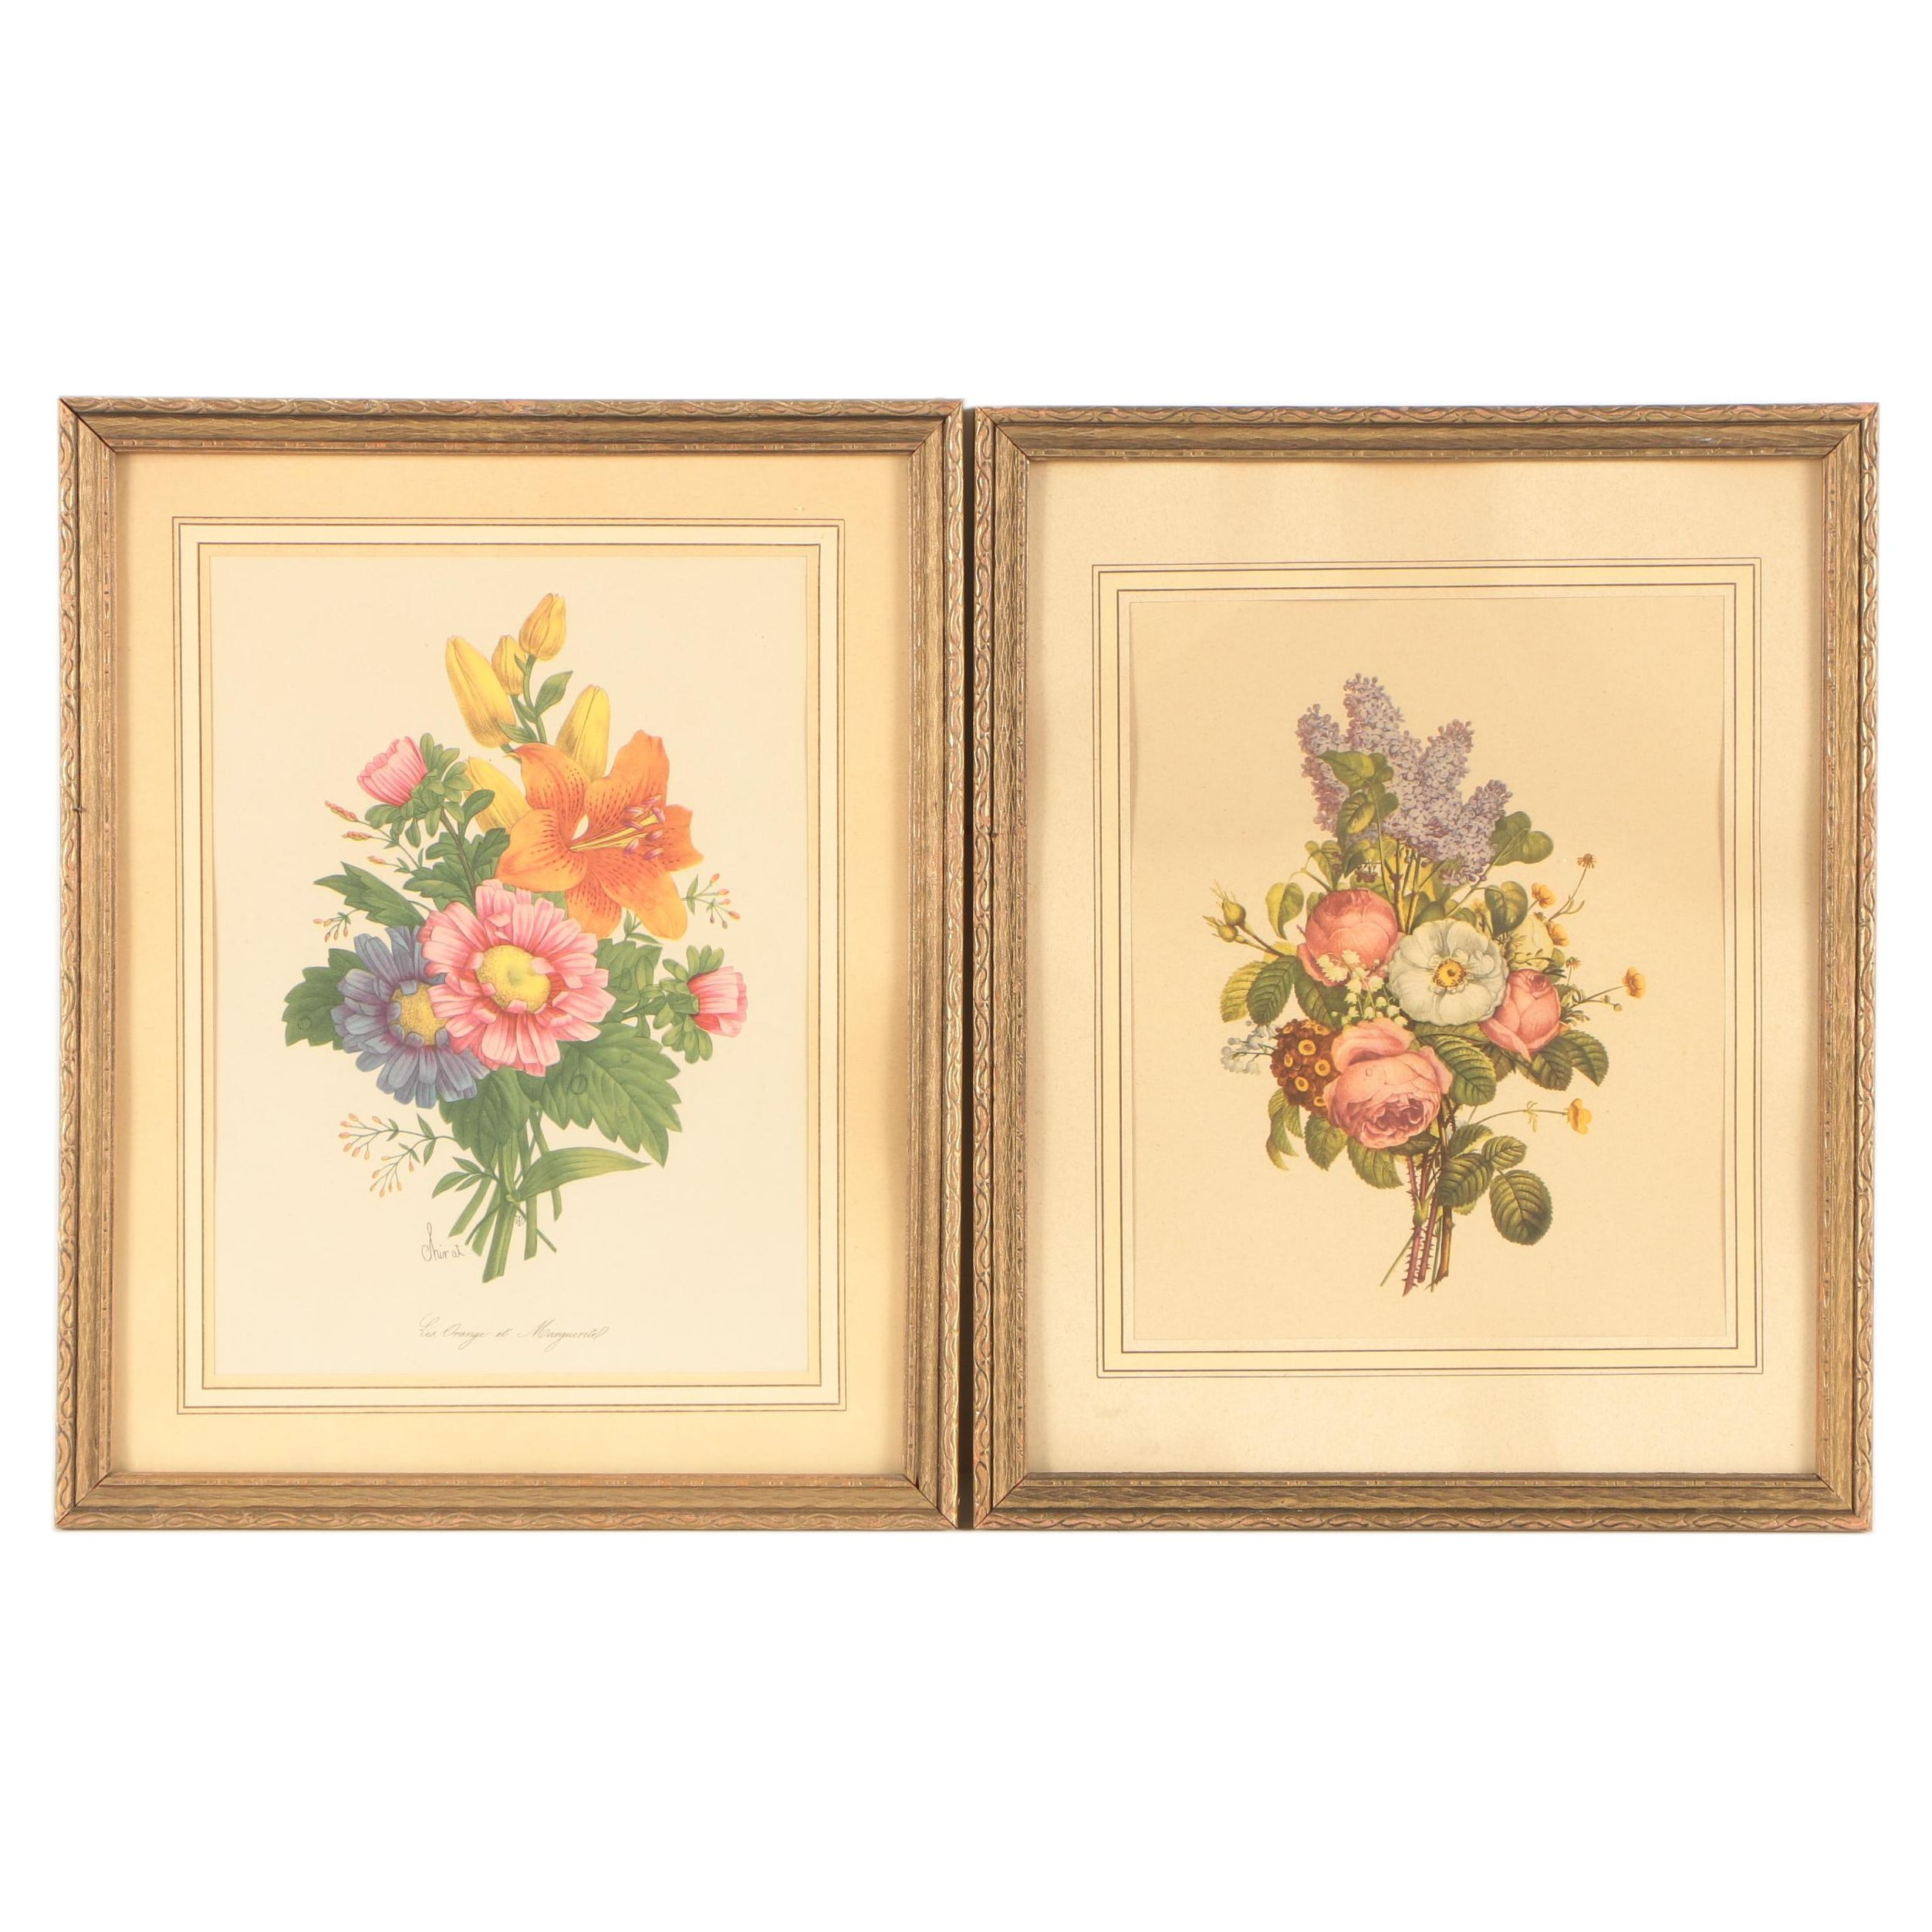 Offset Lithographs of Floral Bouquets